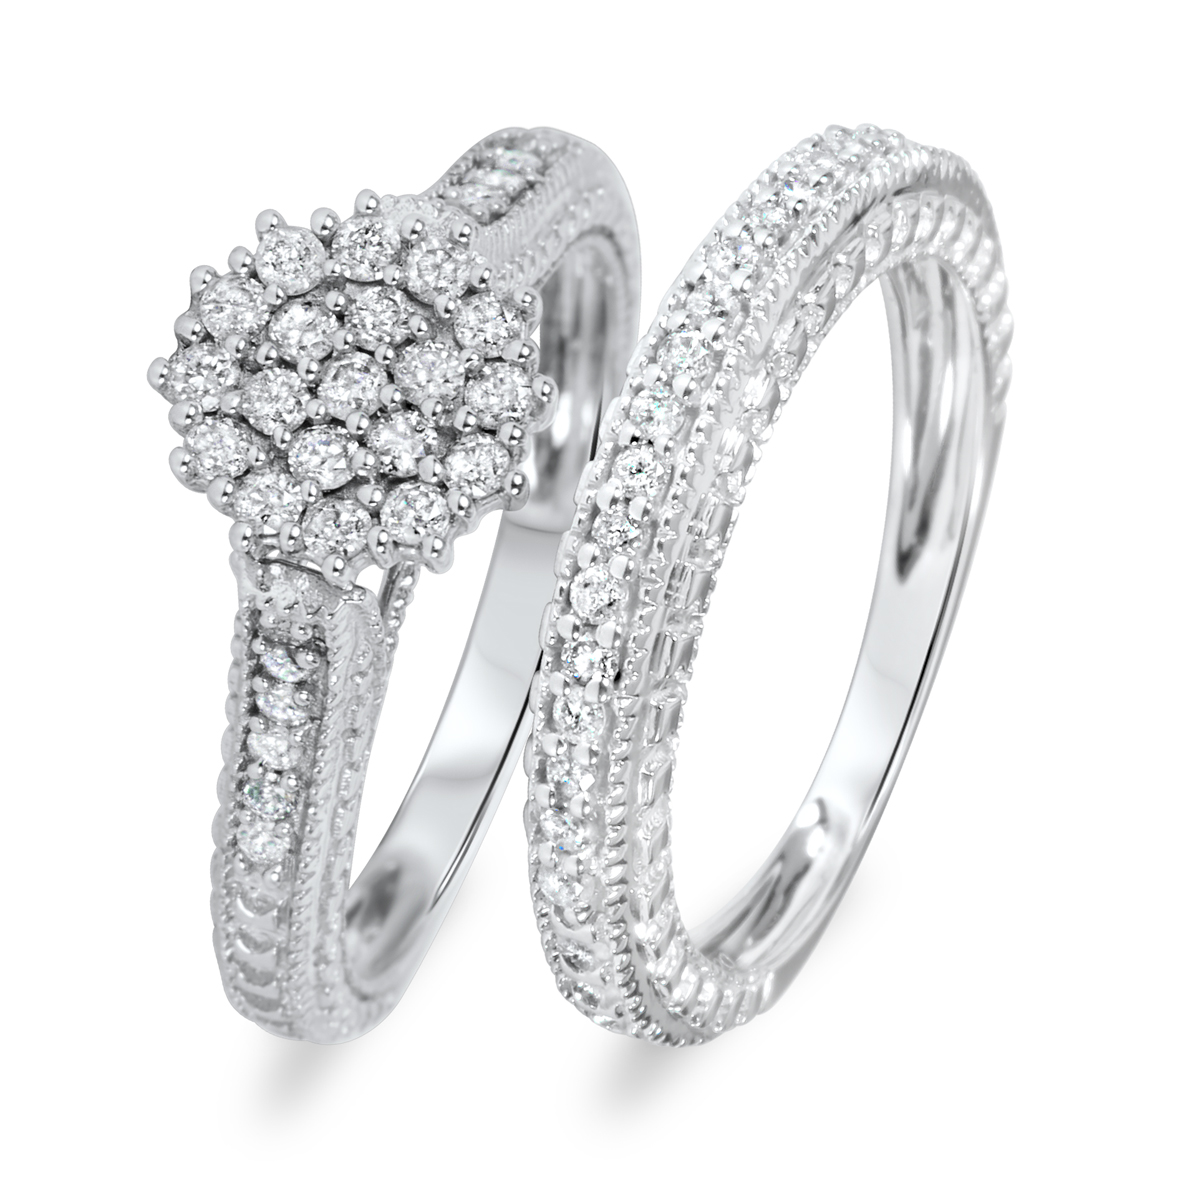 3/4 Carat Diamond Bridal Wedding Ring Set 10K White Gold